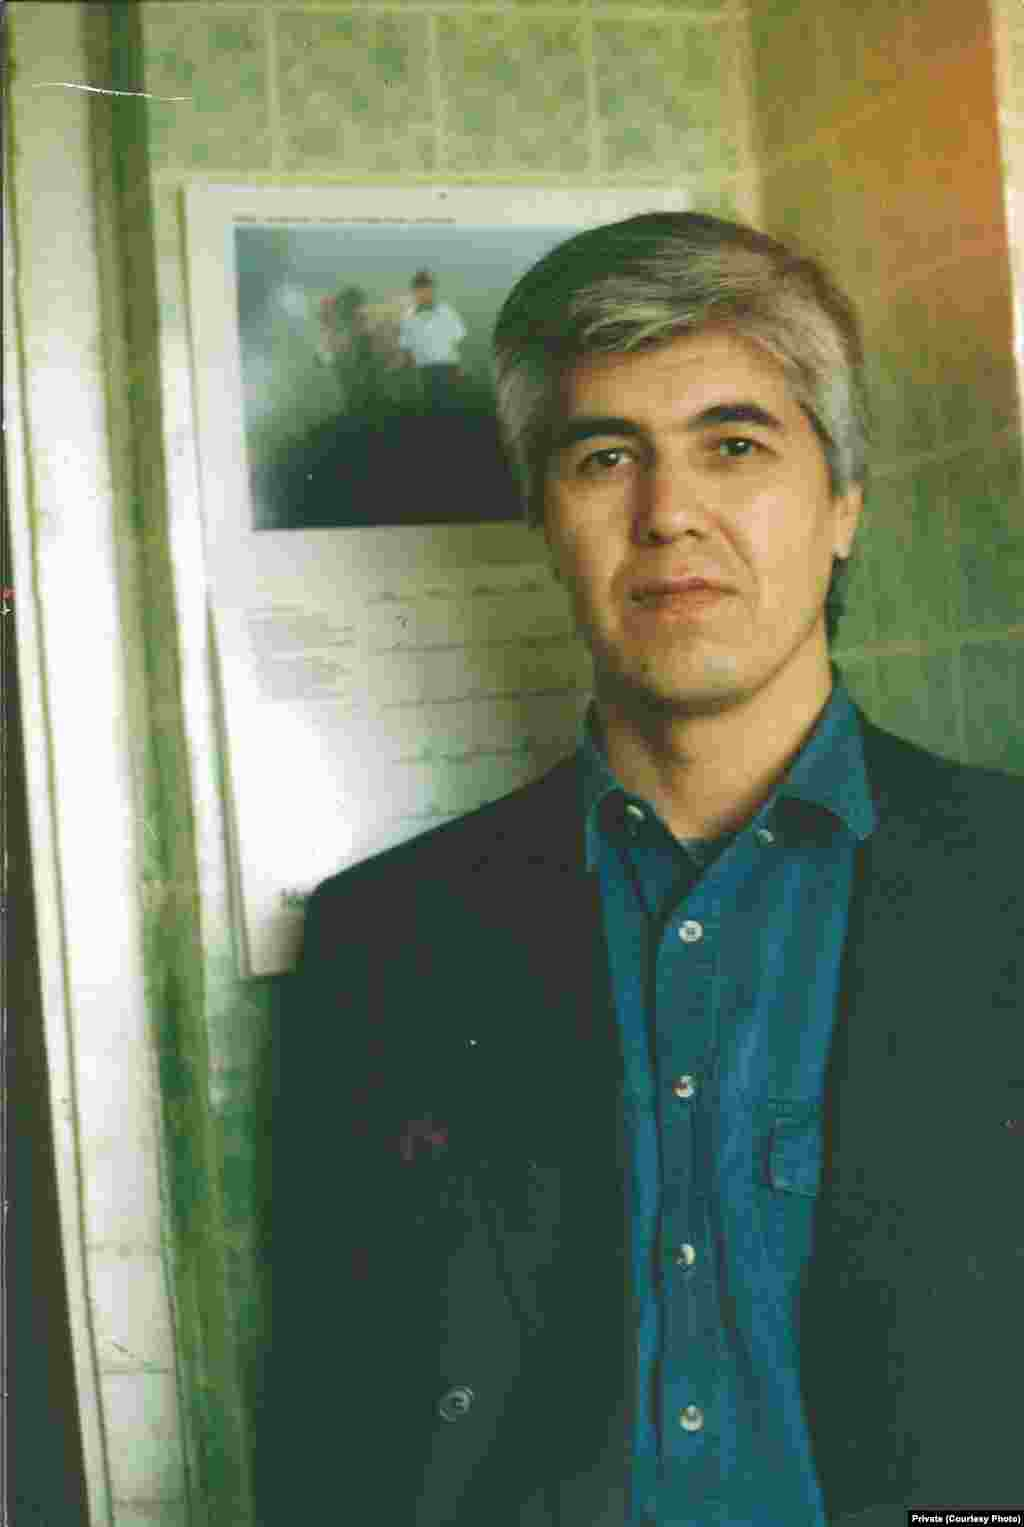 According to the Committee to Protect Journalists, Muhammad Bekjanov (seen here in his Kyiv apartment circa 1998) and a colleague, Yusuf Ruzimuradov, both of whom were jailed in 1999, have been in prison for longer than any other journalists worldwide.